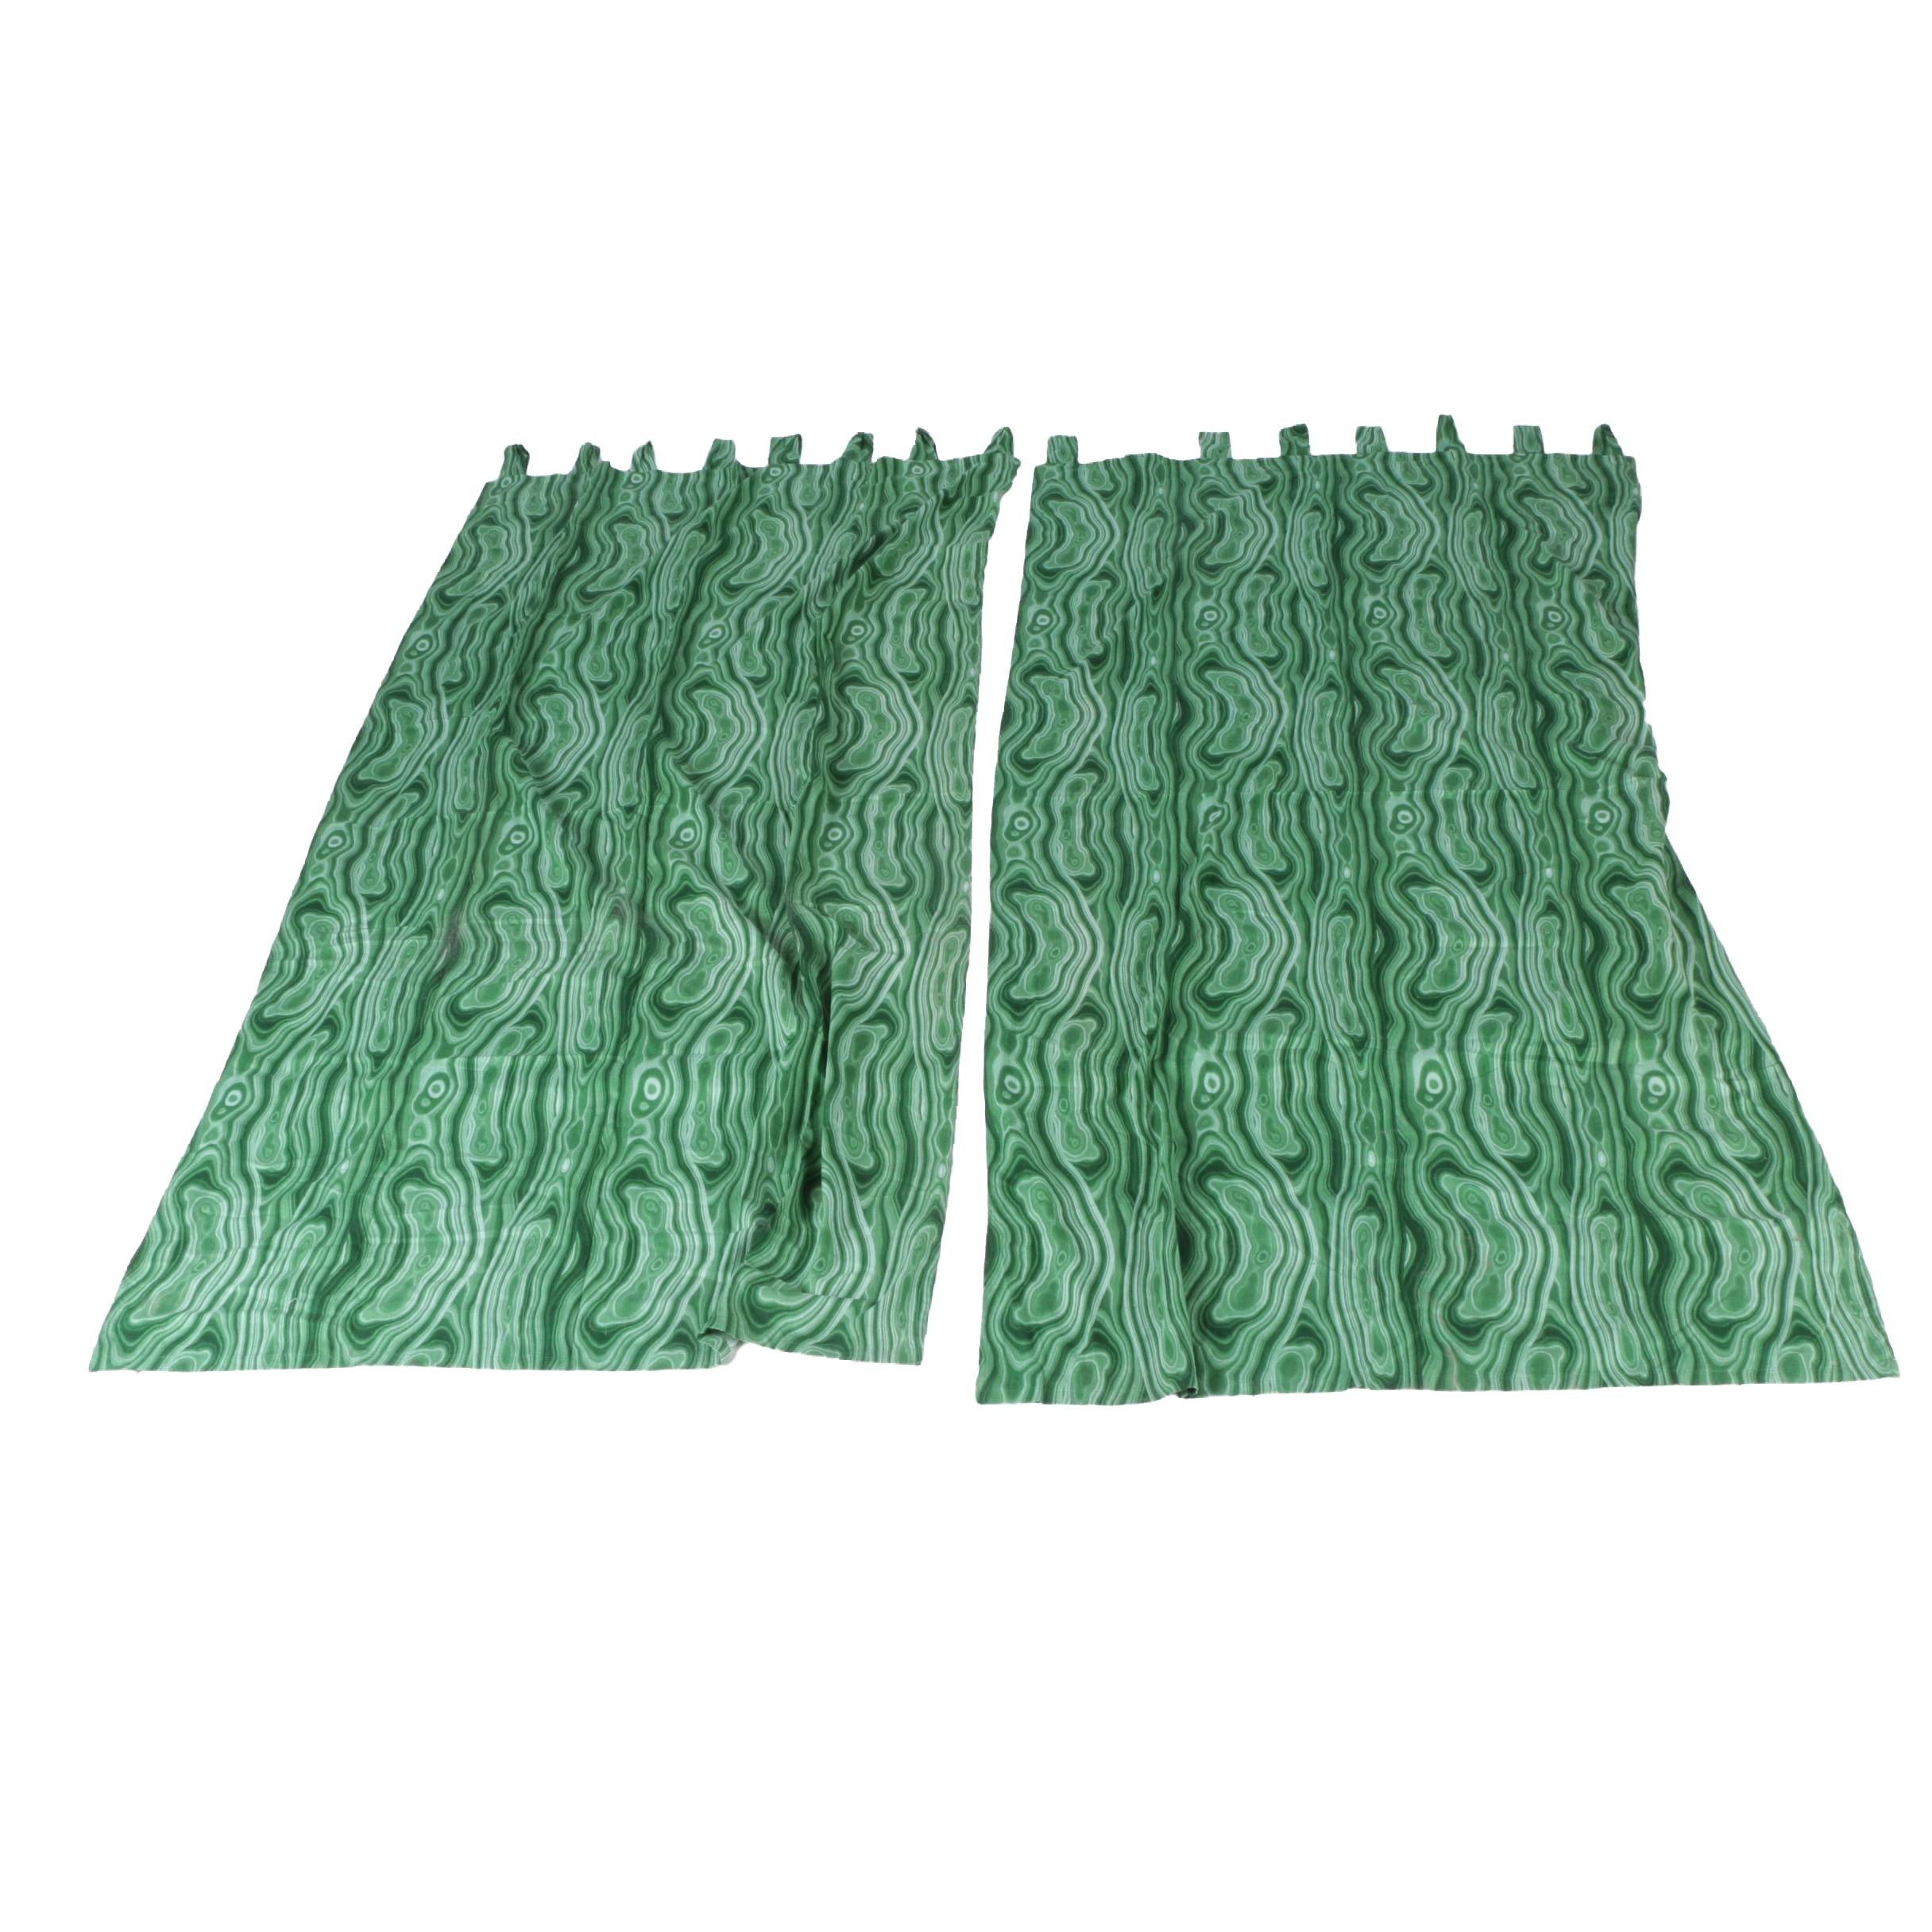 Pair of Patterned Green Curtains